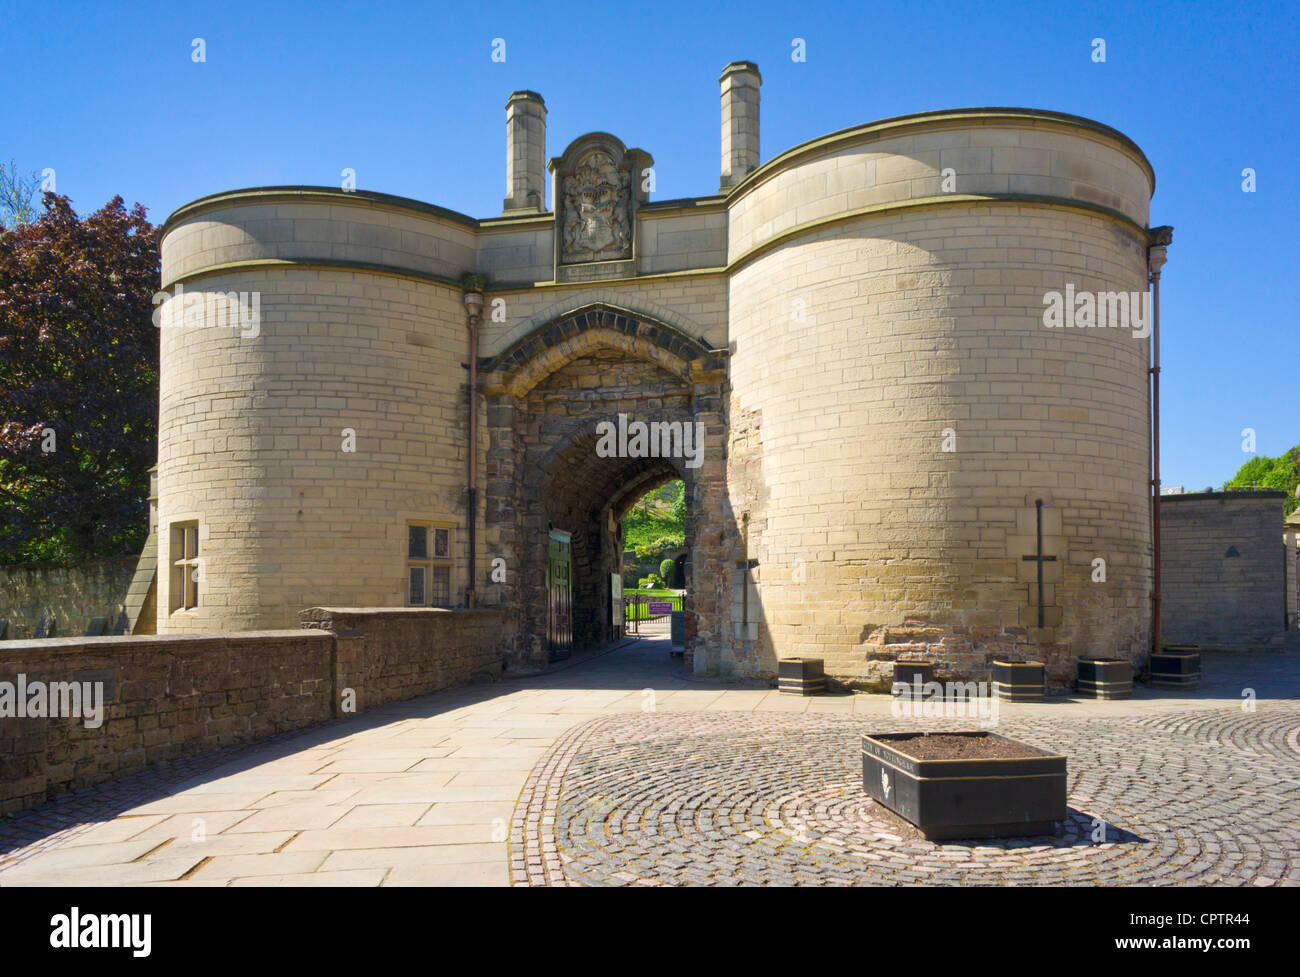 Nottingham castle exterior gate house Nottinghamshire east midlands England UK GB EU Europe - Stock Image